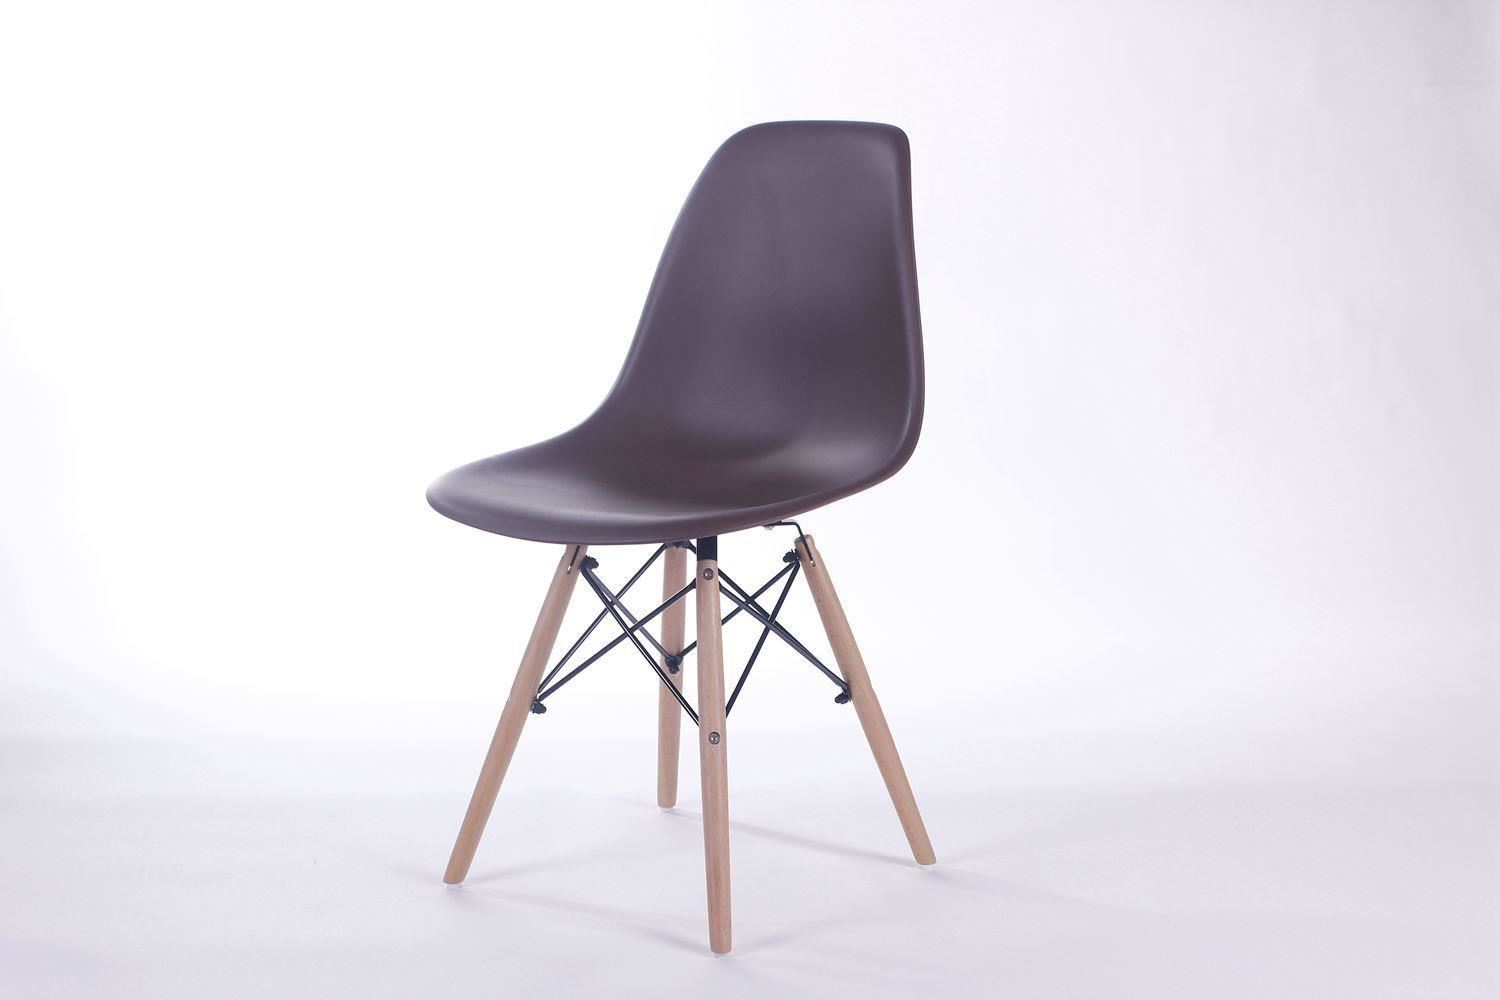 Charles Ray Eames Eiffel Inspired DSW Side Dining Chair  : 033401b8 58df 466c 85e1 e53c5bf0c19d from www.ebay.co.uk size 1500 x 1000 jpeg 55kB